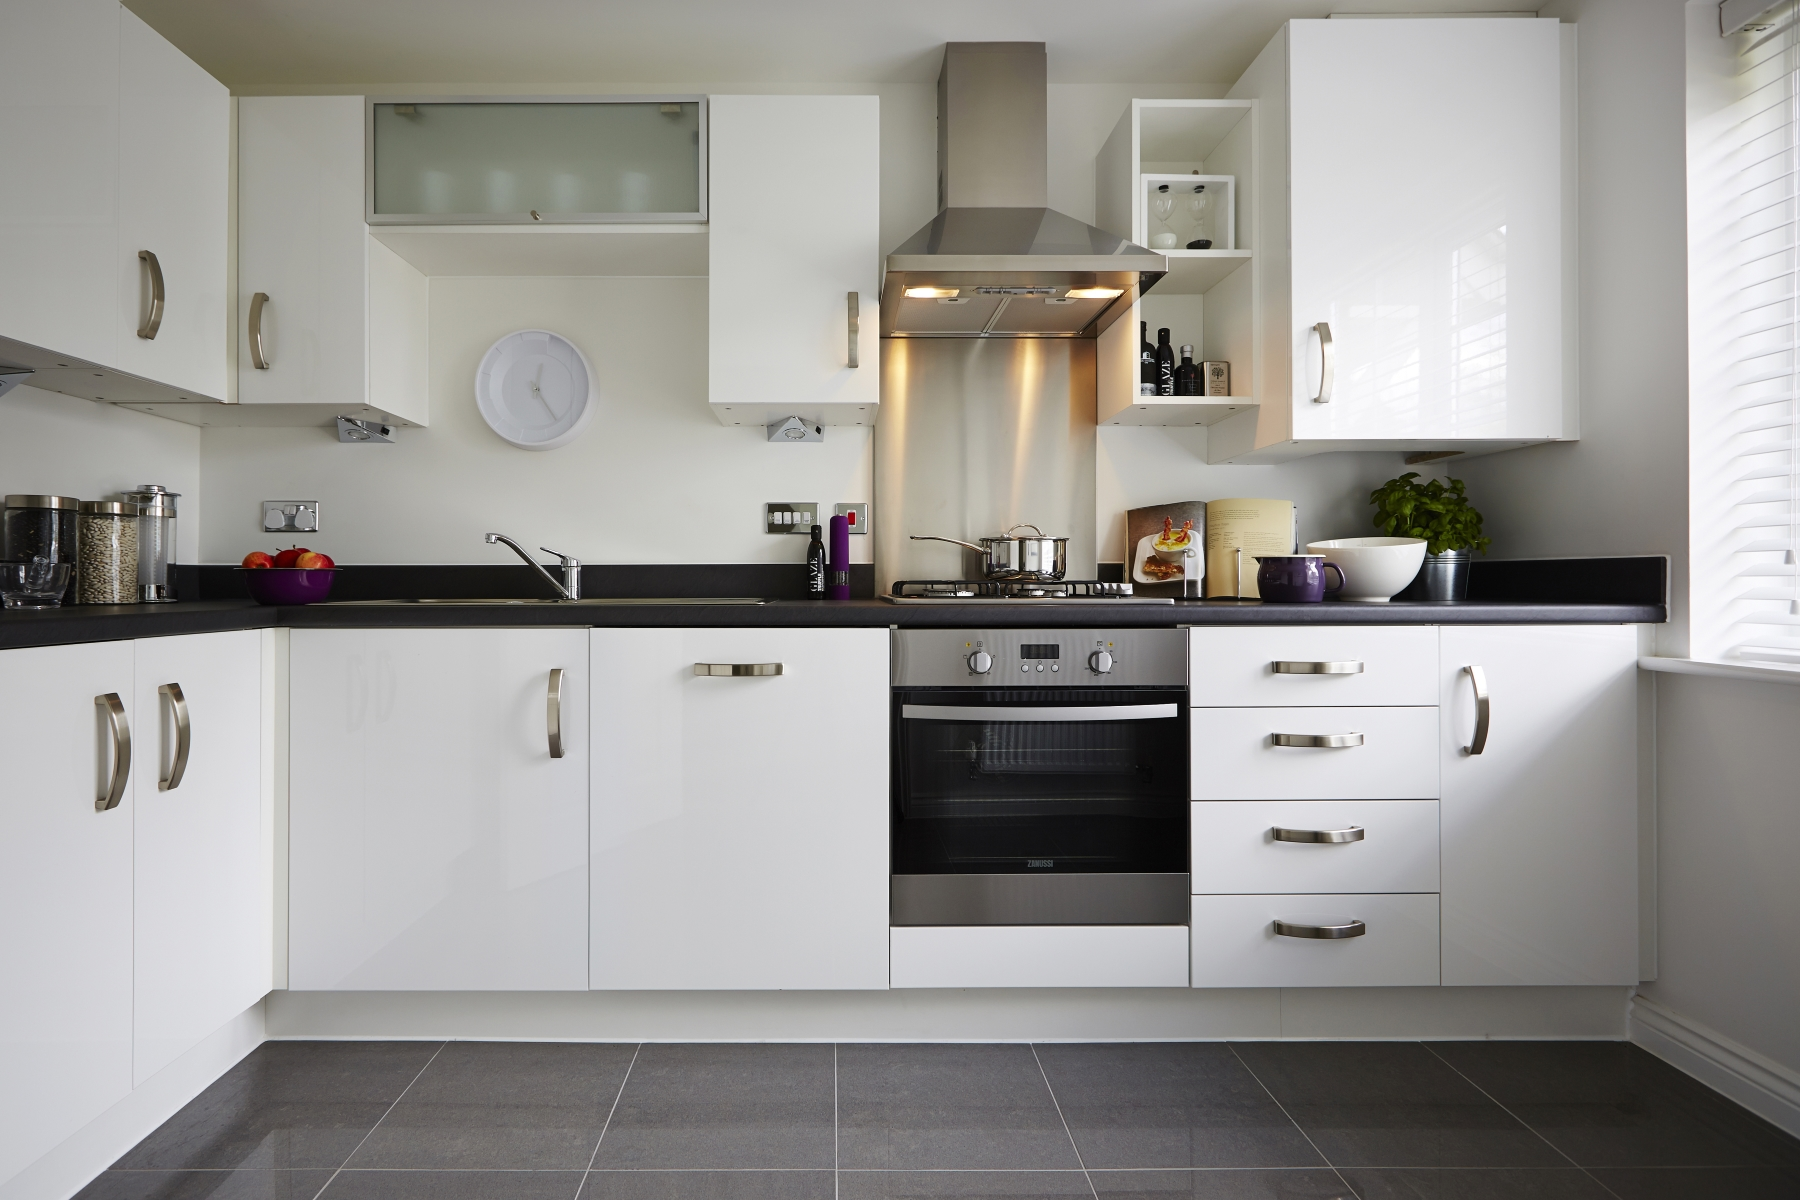 Man_Winnington_PA30_Dadford_Kitchen